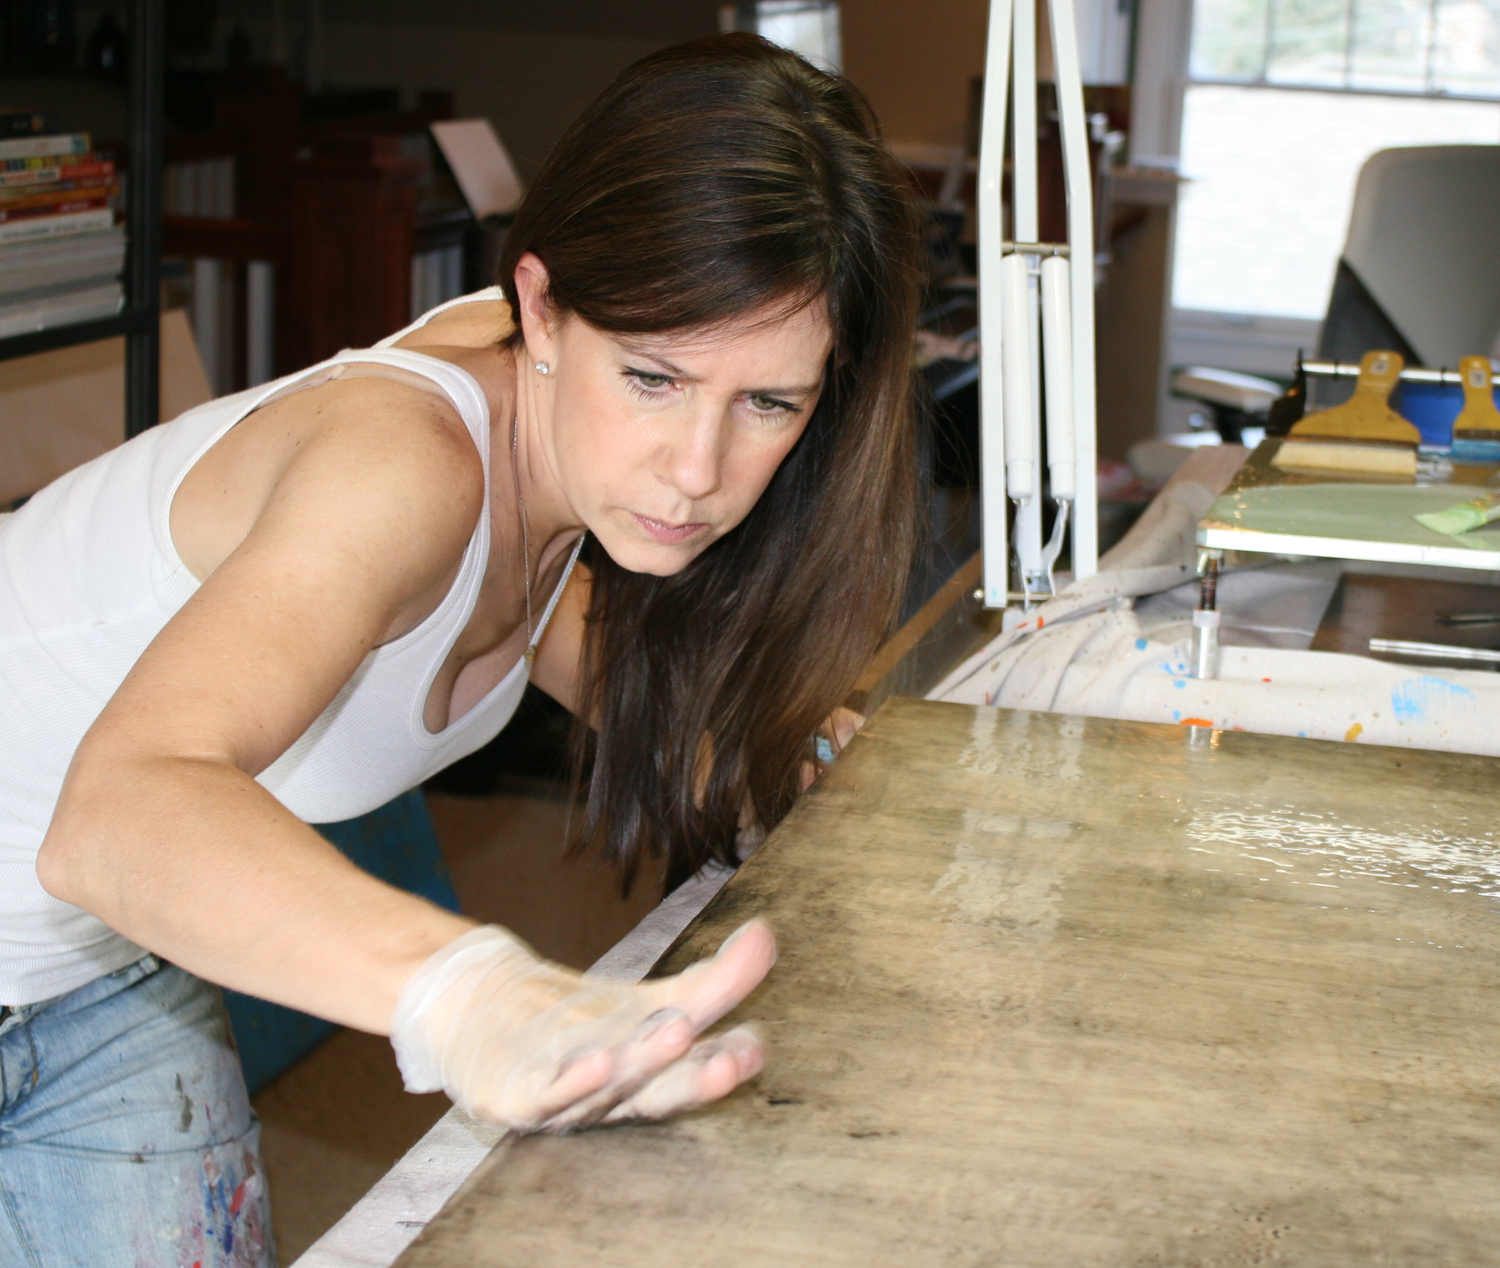 In her studio: Another step in Van Winkle's artistic process